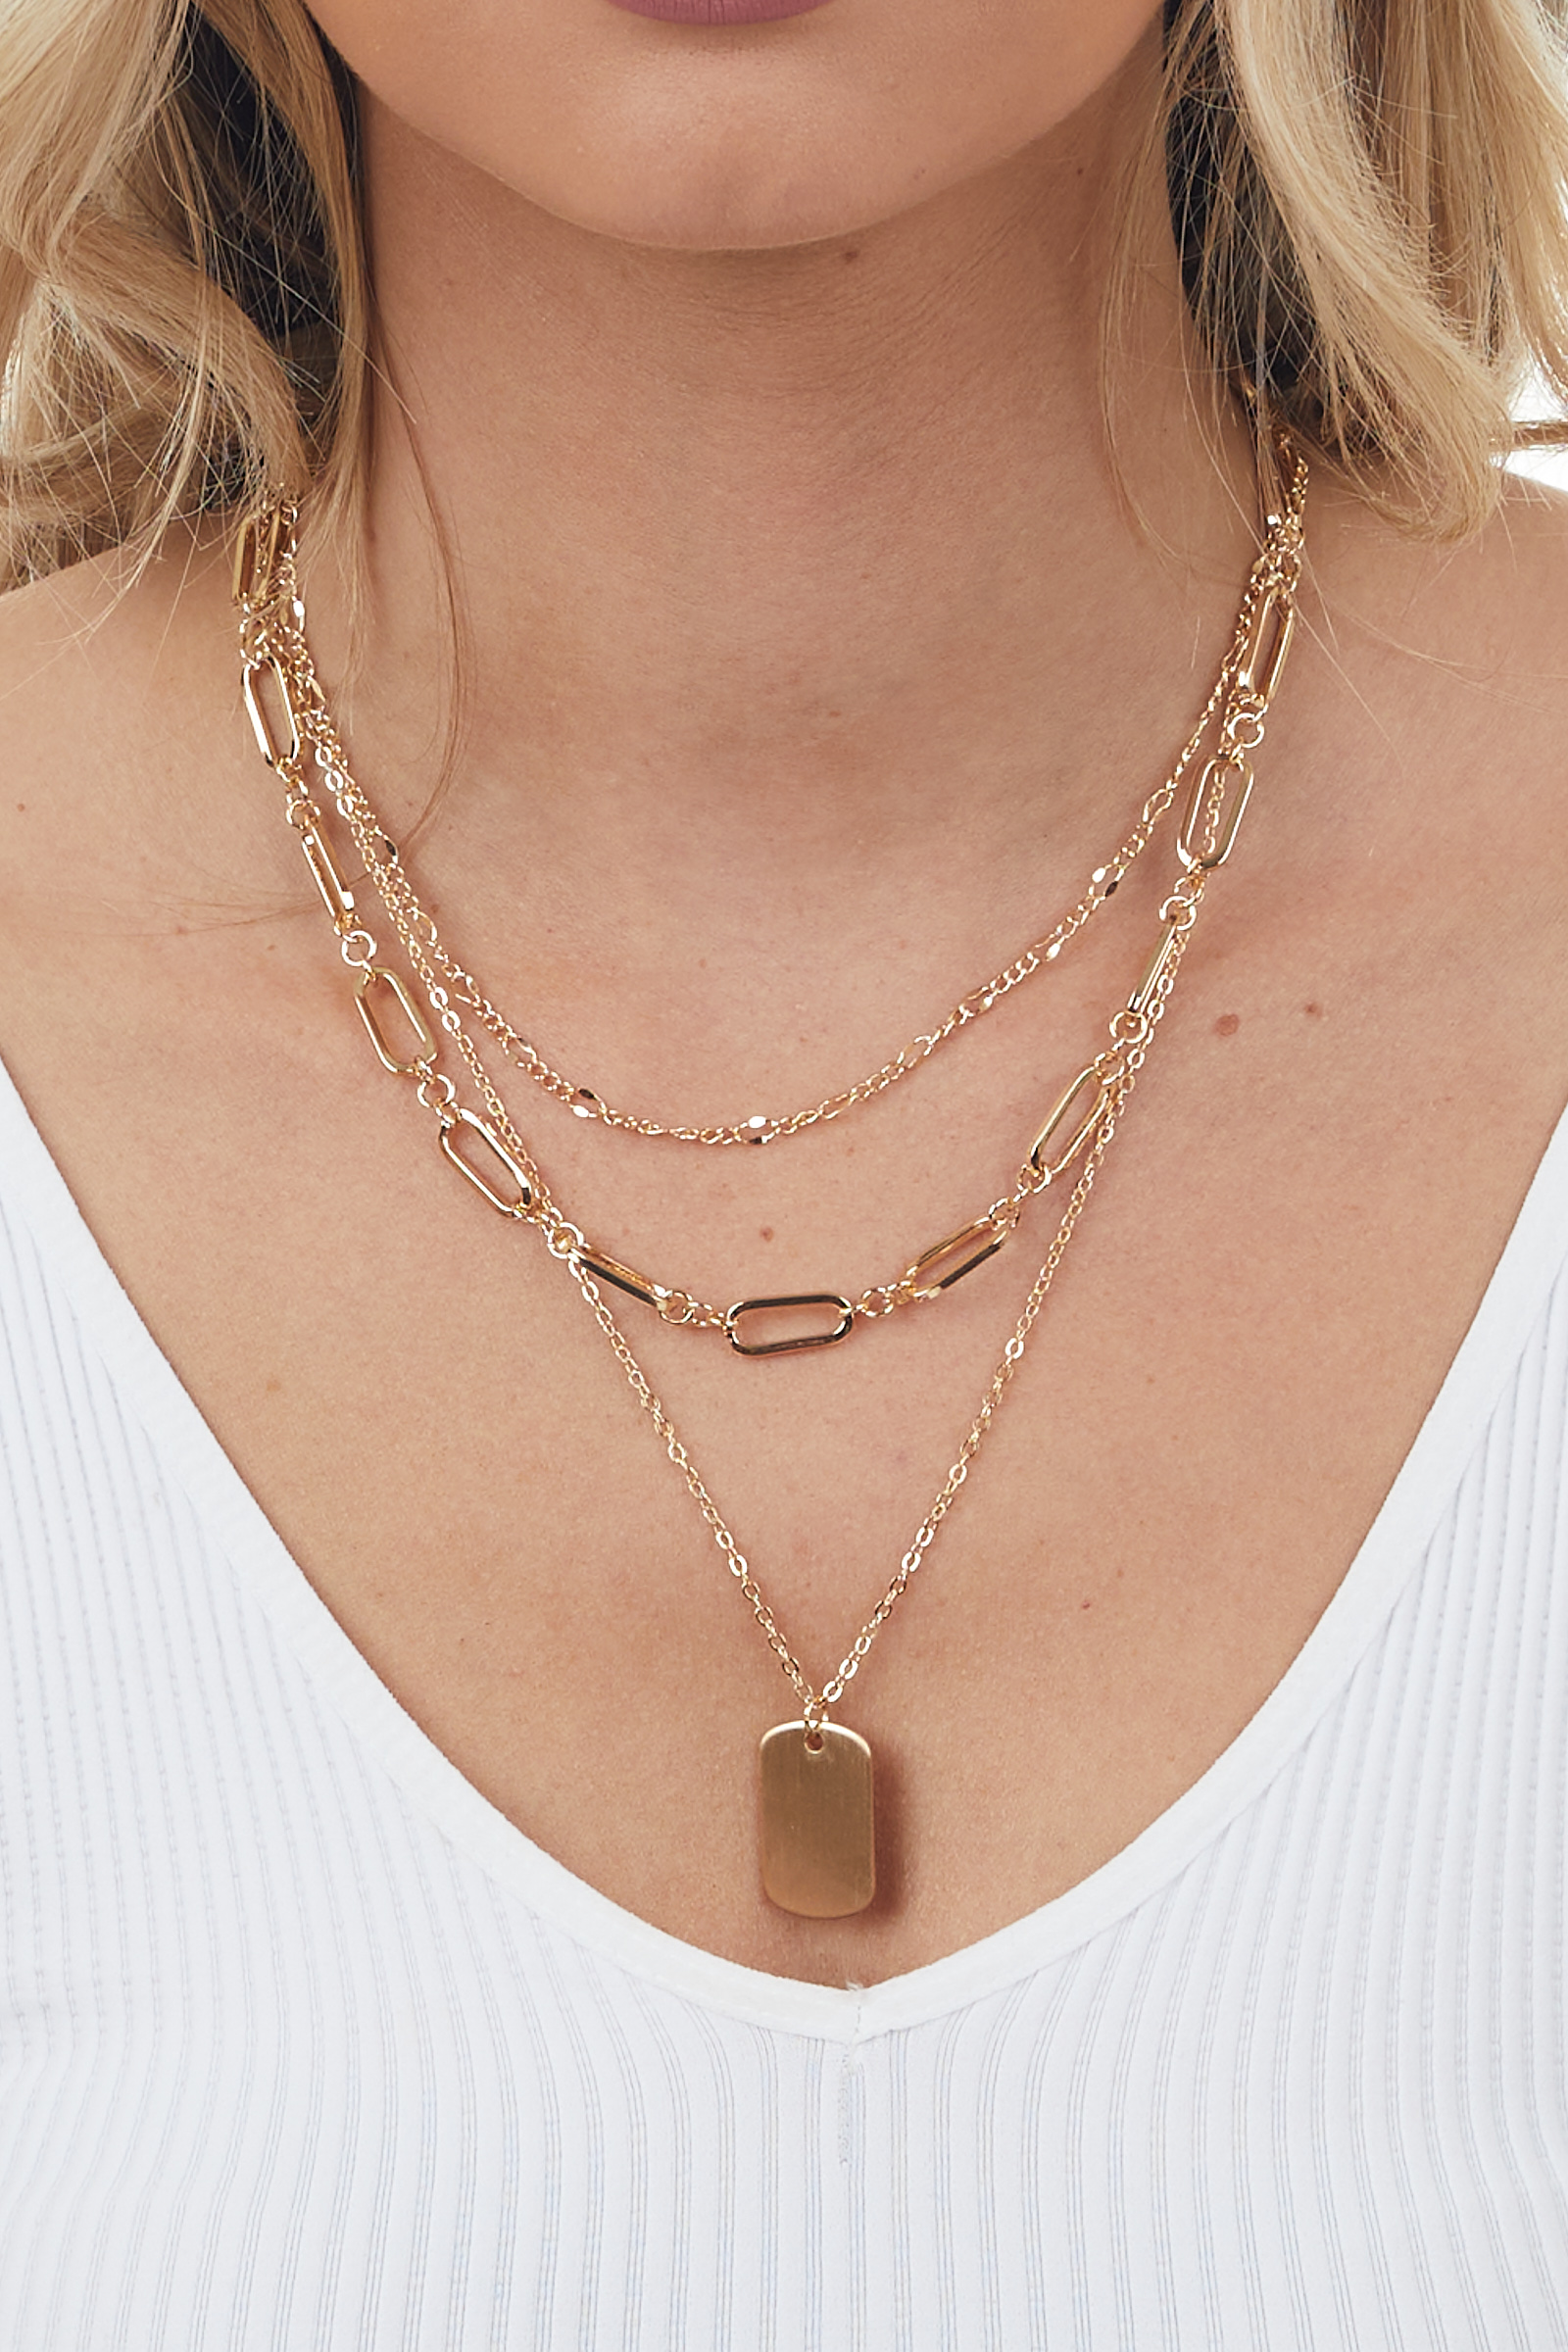 Gold Dog Tag Charm Layered Chain Necklace